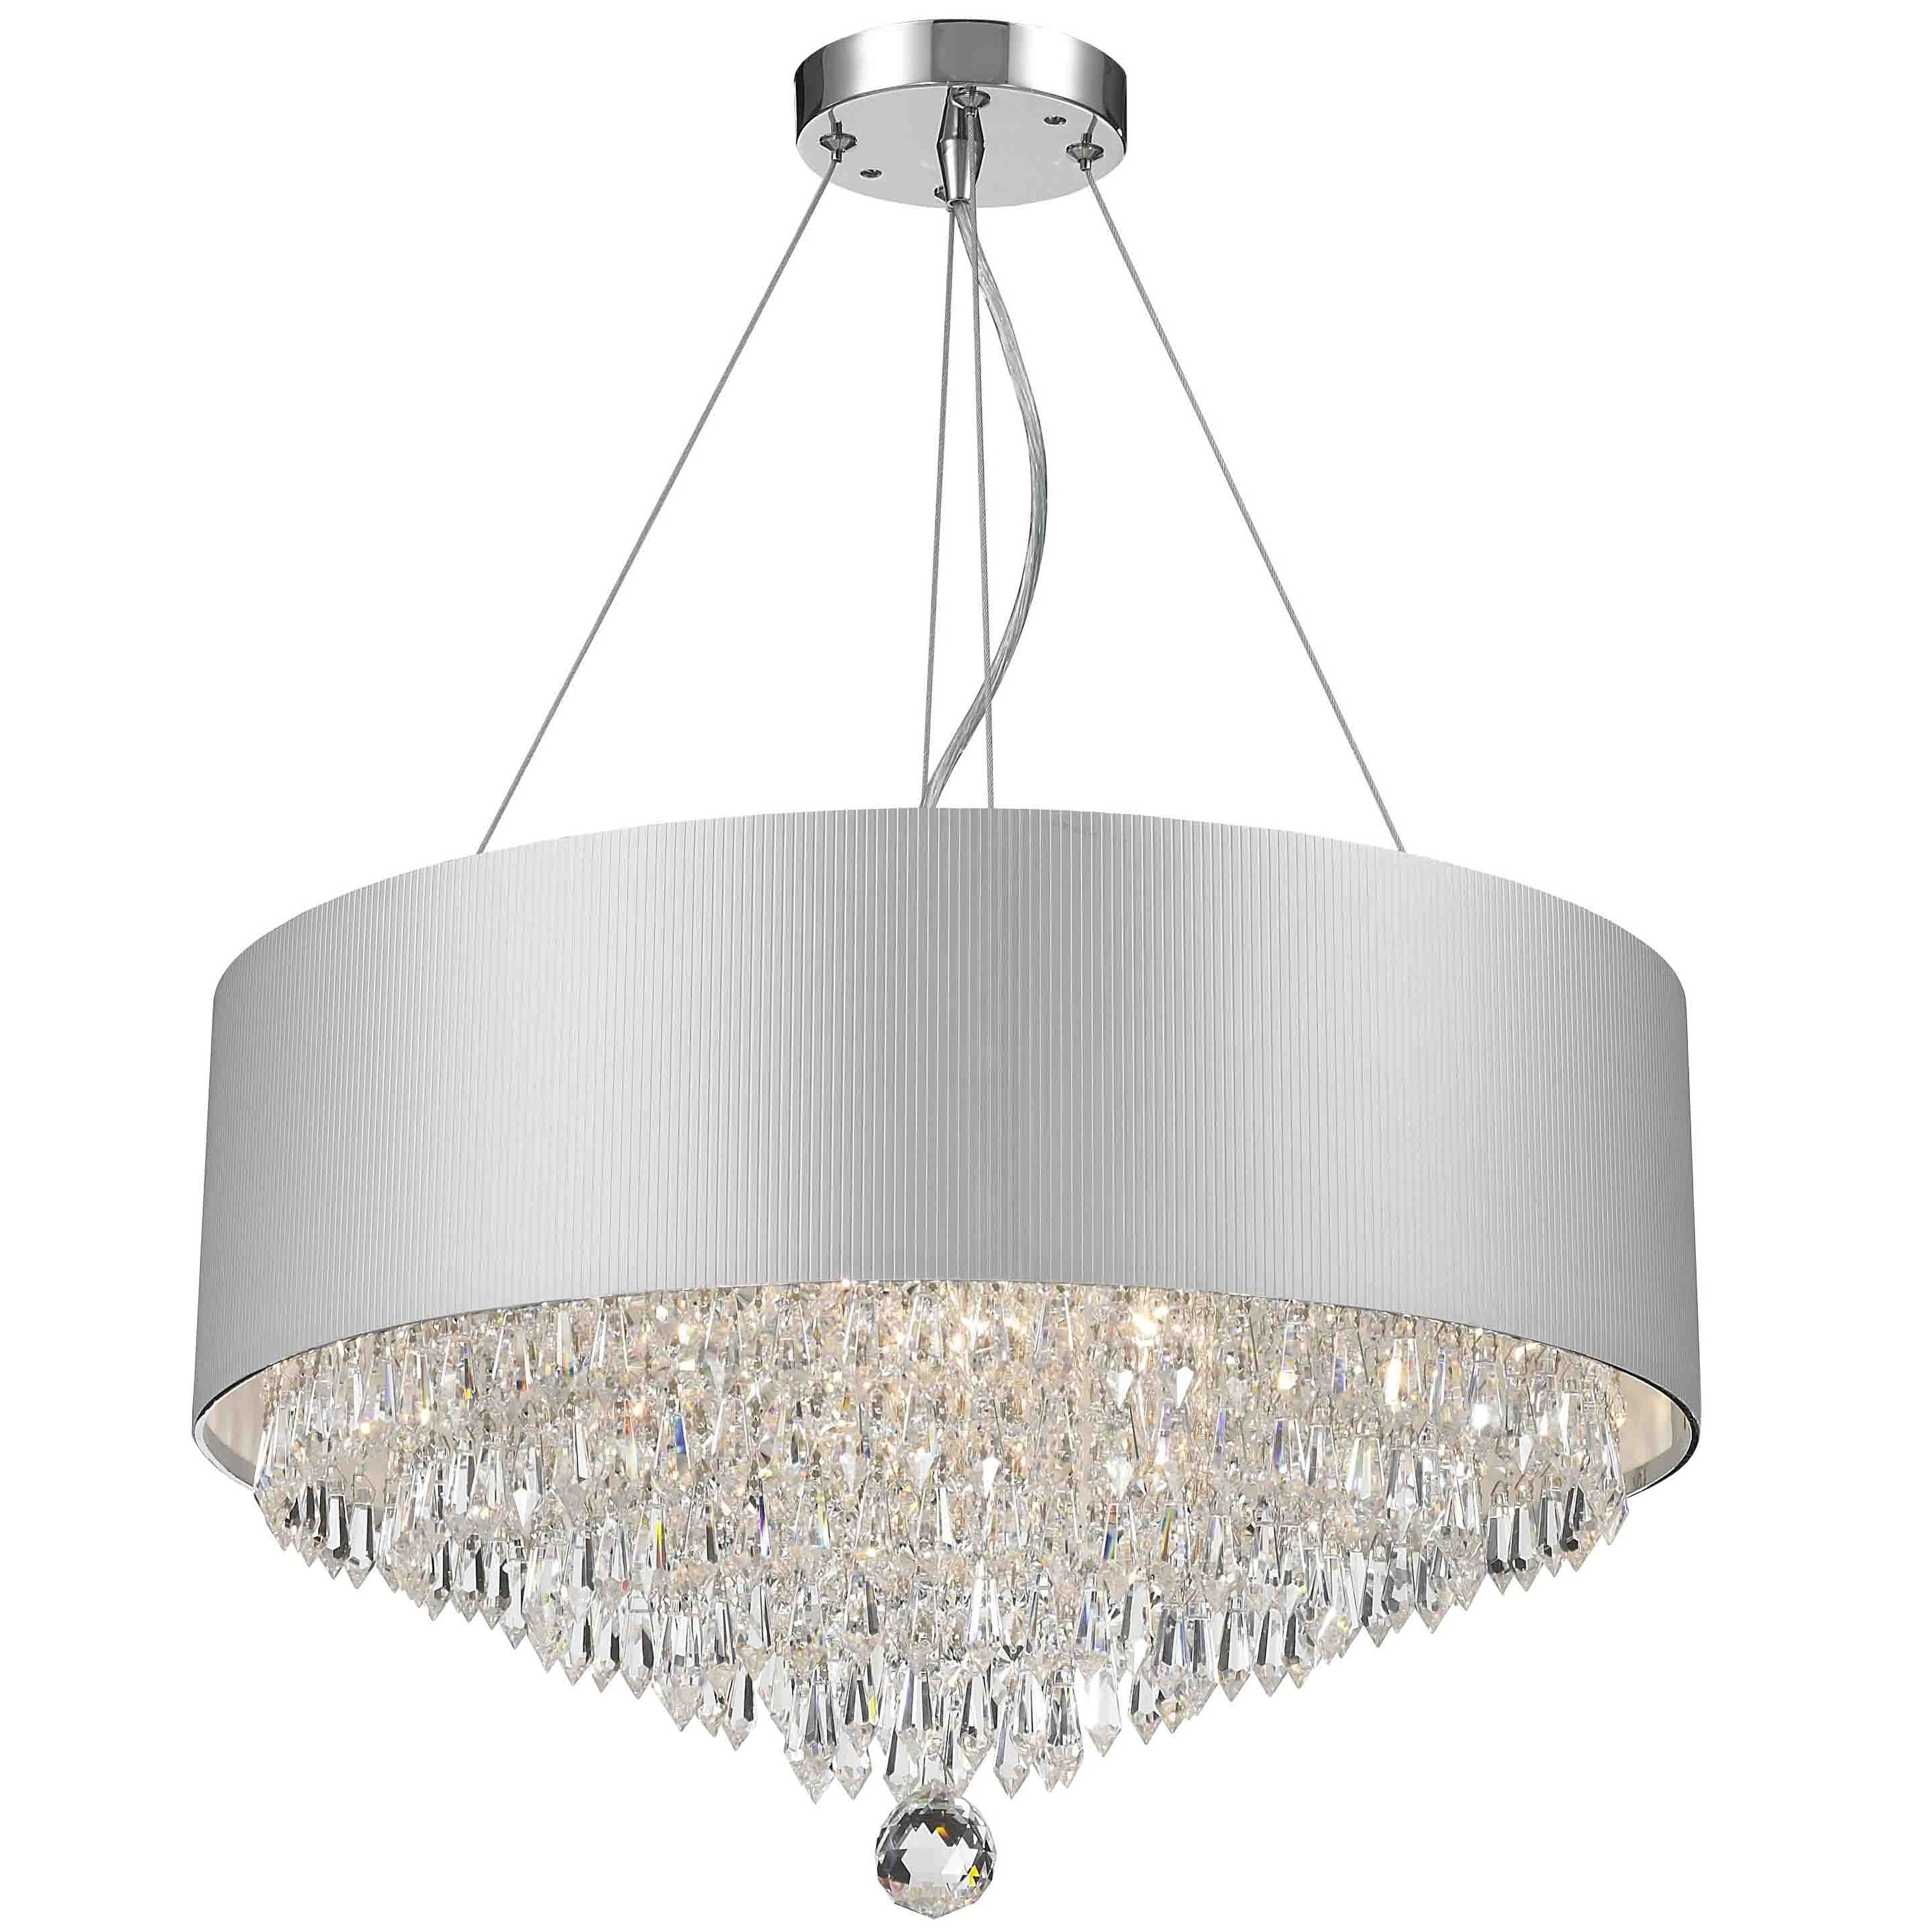 Contemporary Modern 8-light Chrome Finish and Crystal Bal...